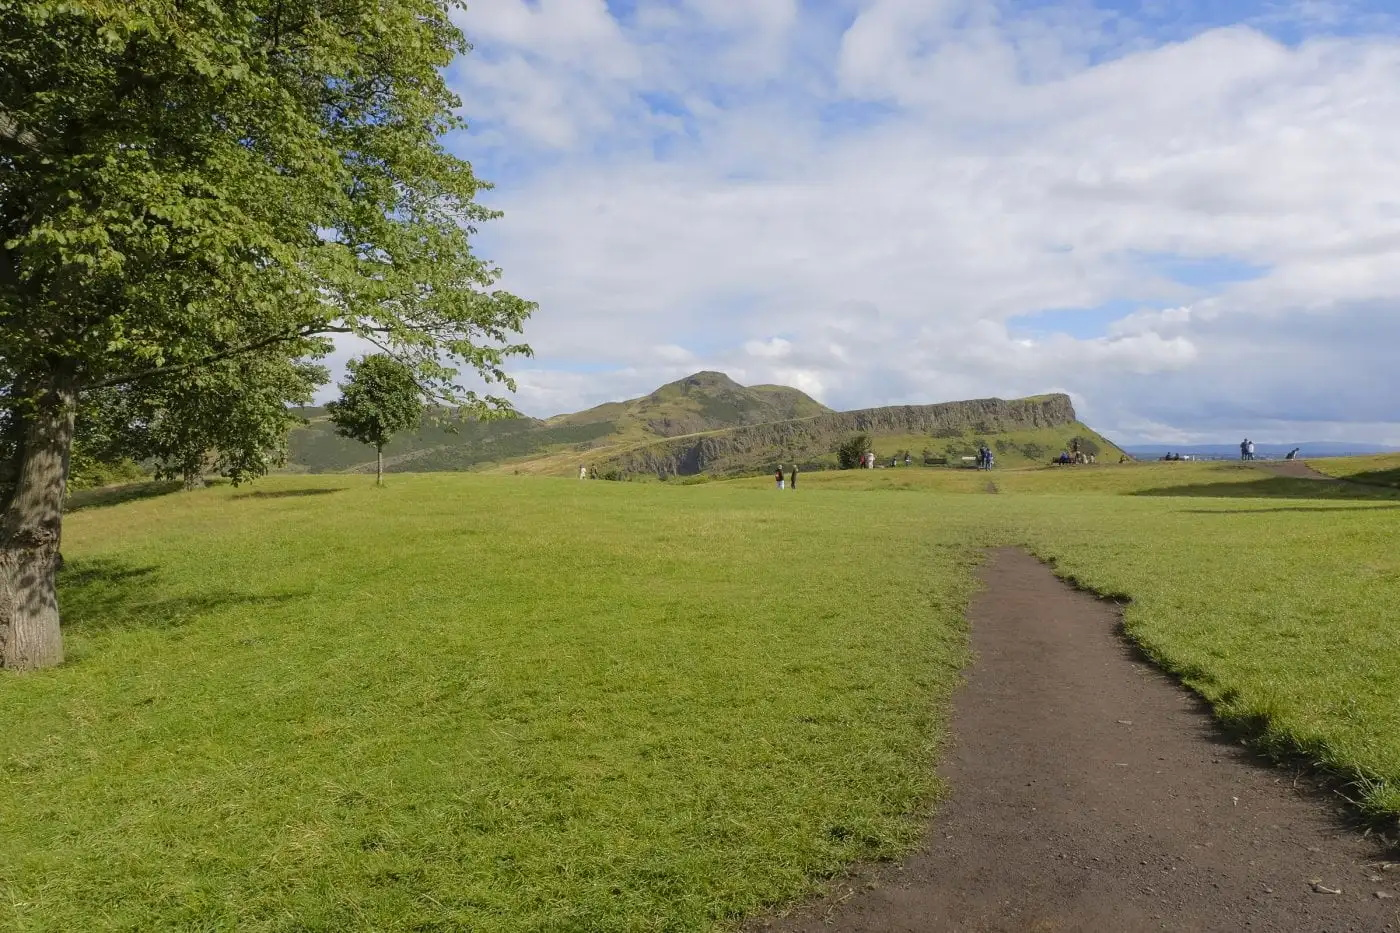 Salisbury Crags and Arthur's Seat from Calton Hill